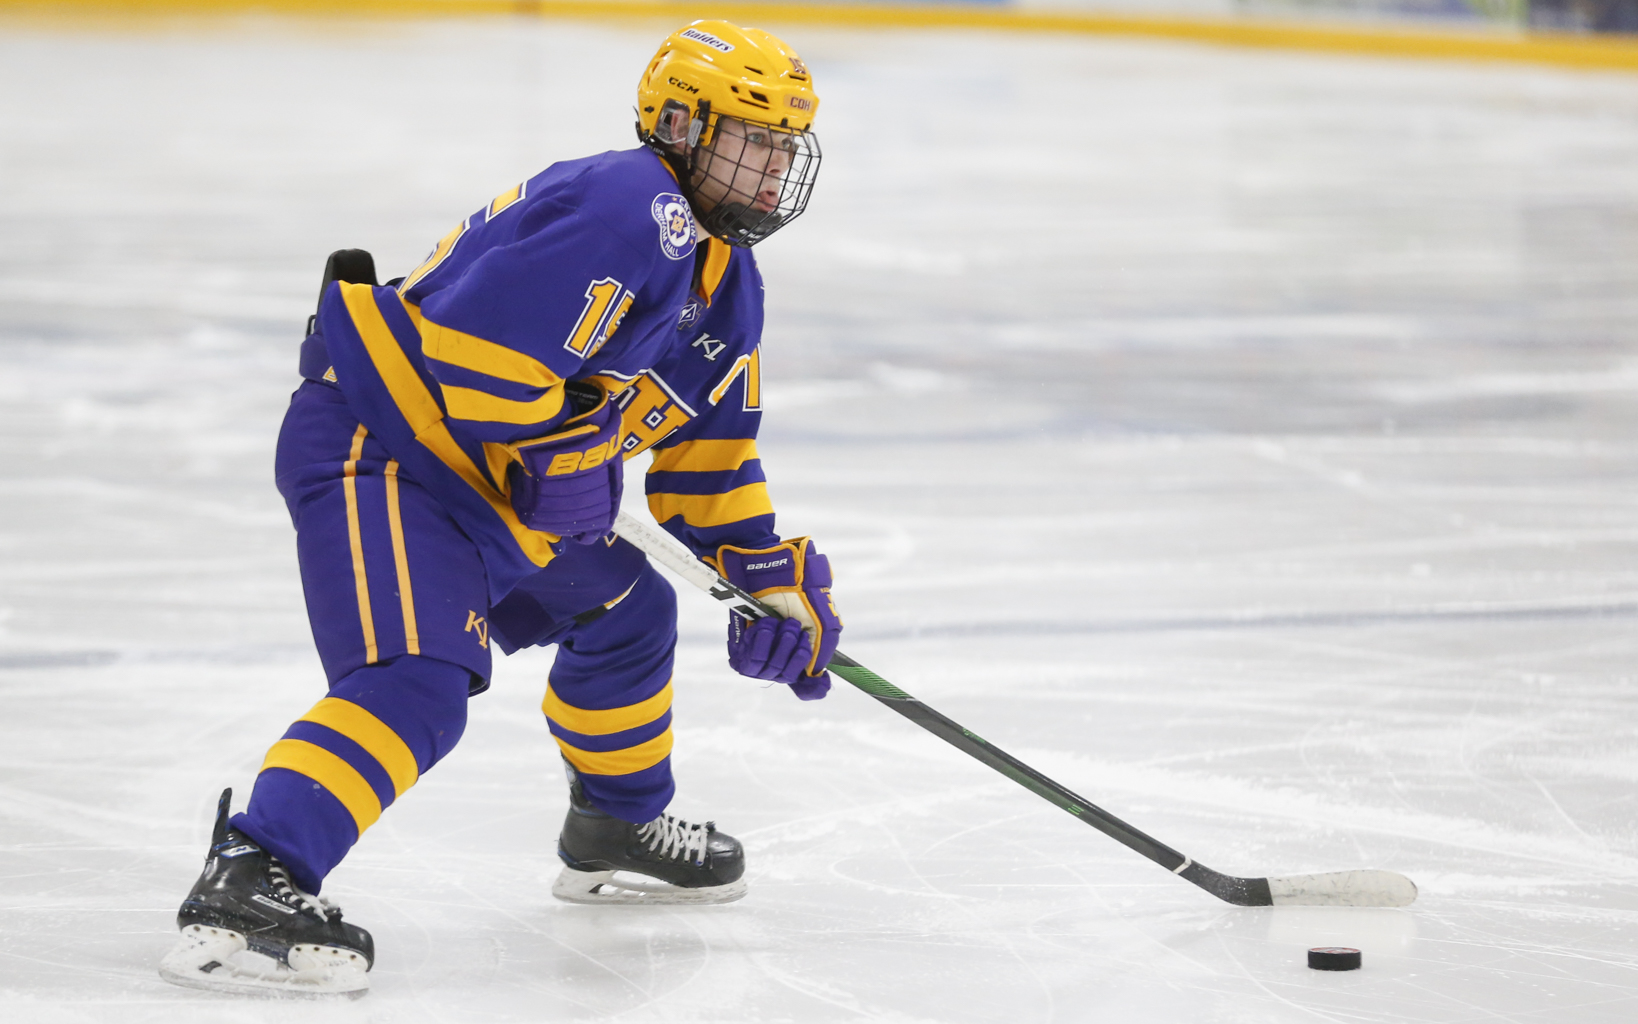 Cretin-Derham Hall's Matthew Gleason (15) looks for an open teammate on a power play opportunity against Stillwater Tuesday night. Gleason had two assists in the Raiders' 2-0 victory over the Ponies in Stillwater. Photo by Jeff Lawler, SportsEngine